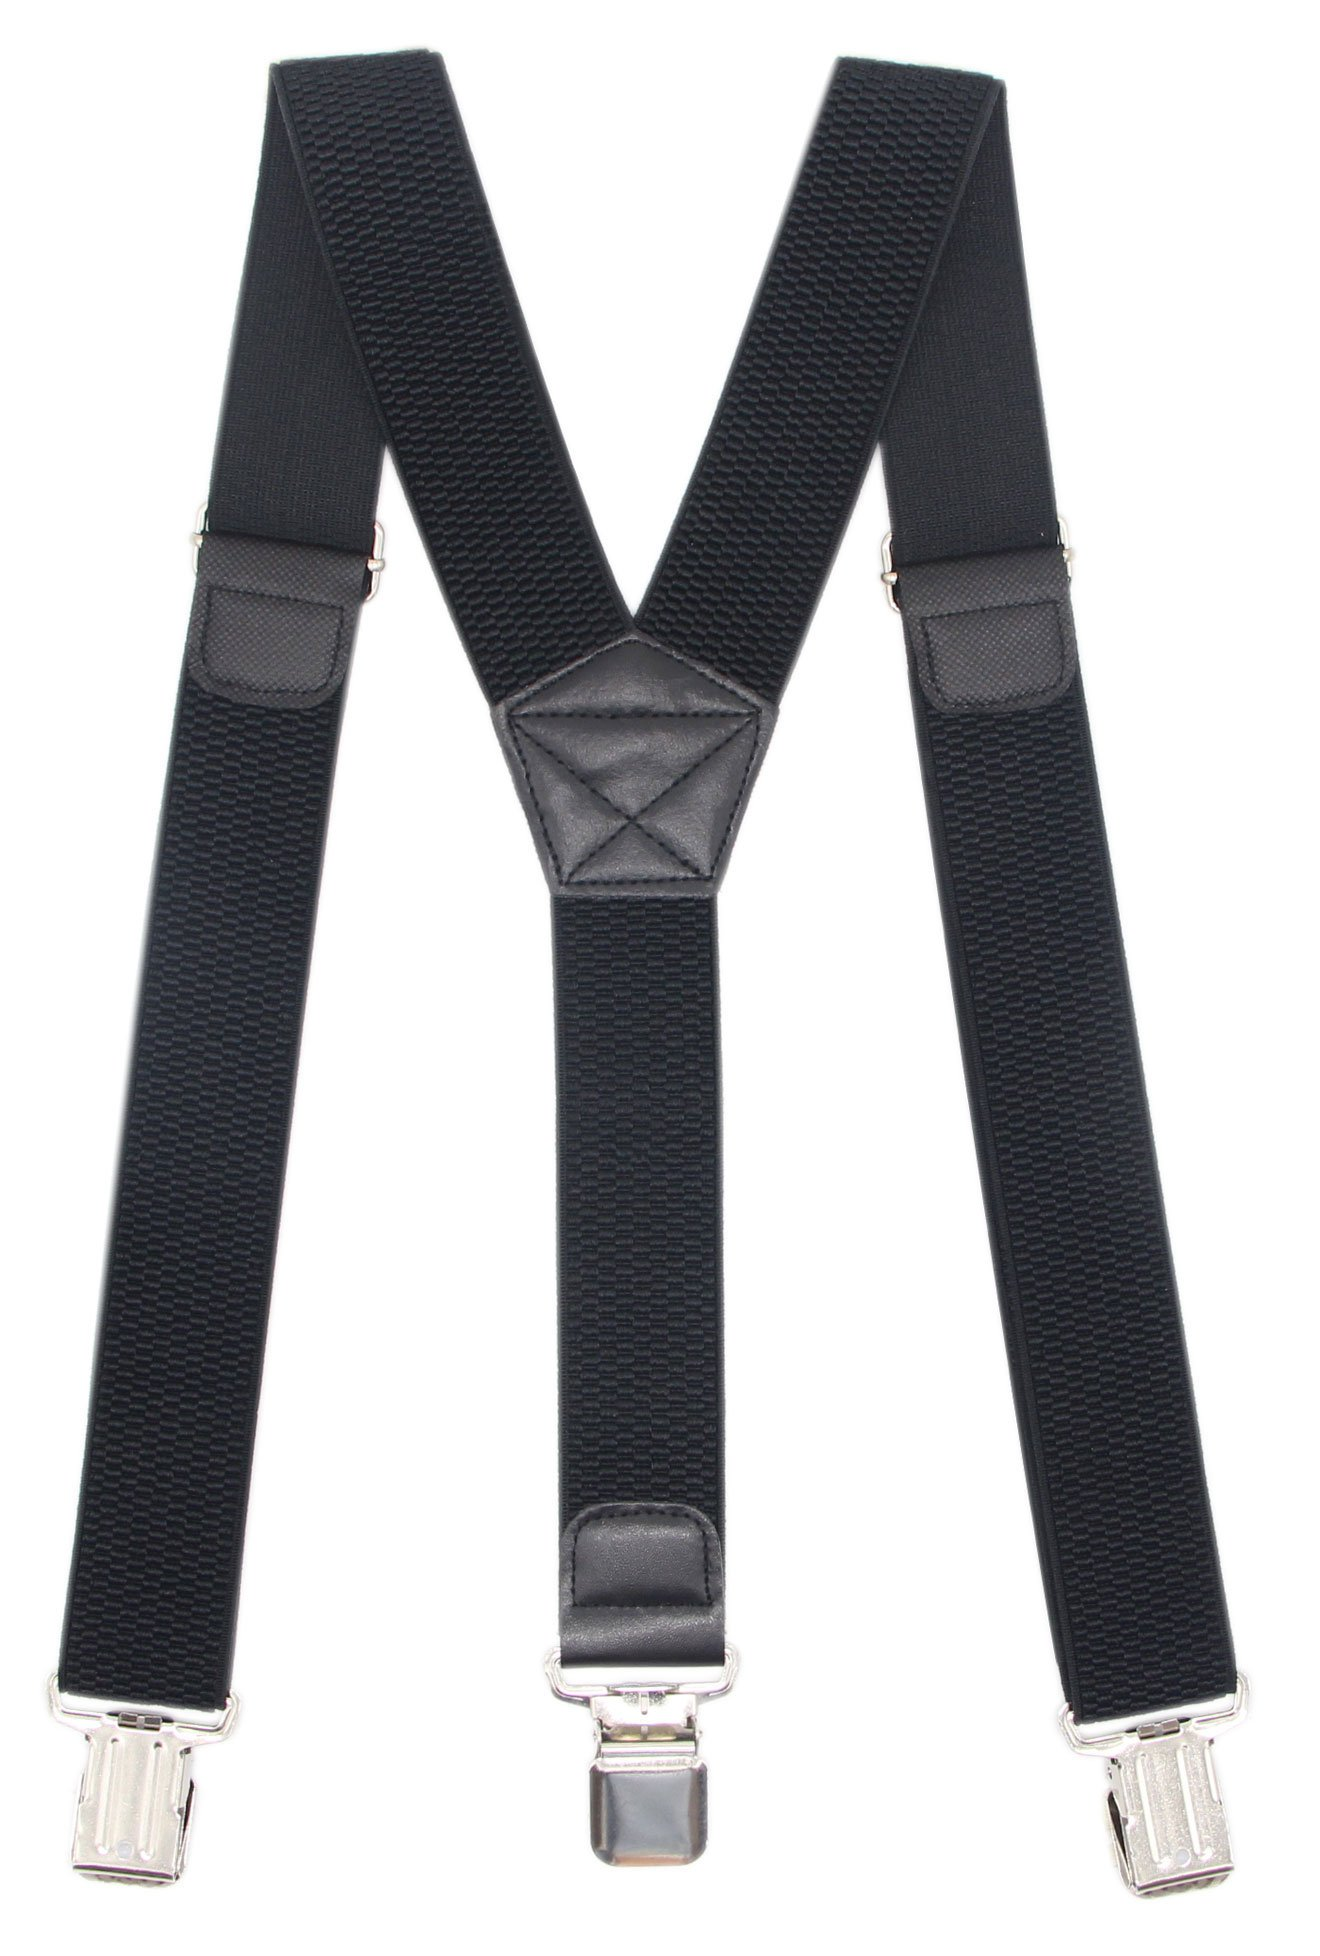 JAIFEI Men's Y Shape Wide Suspenders - Heavy Duty With Strong Clips (Black)